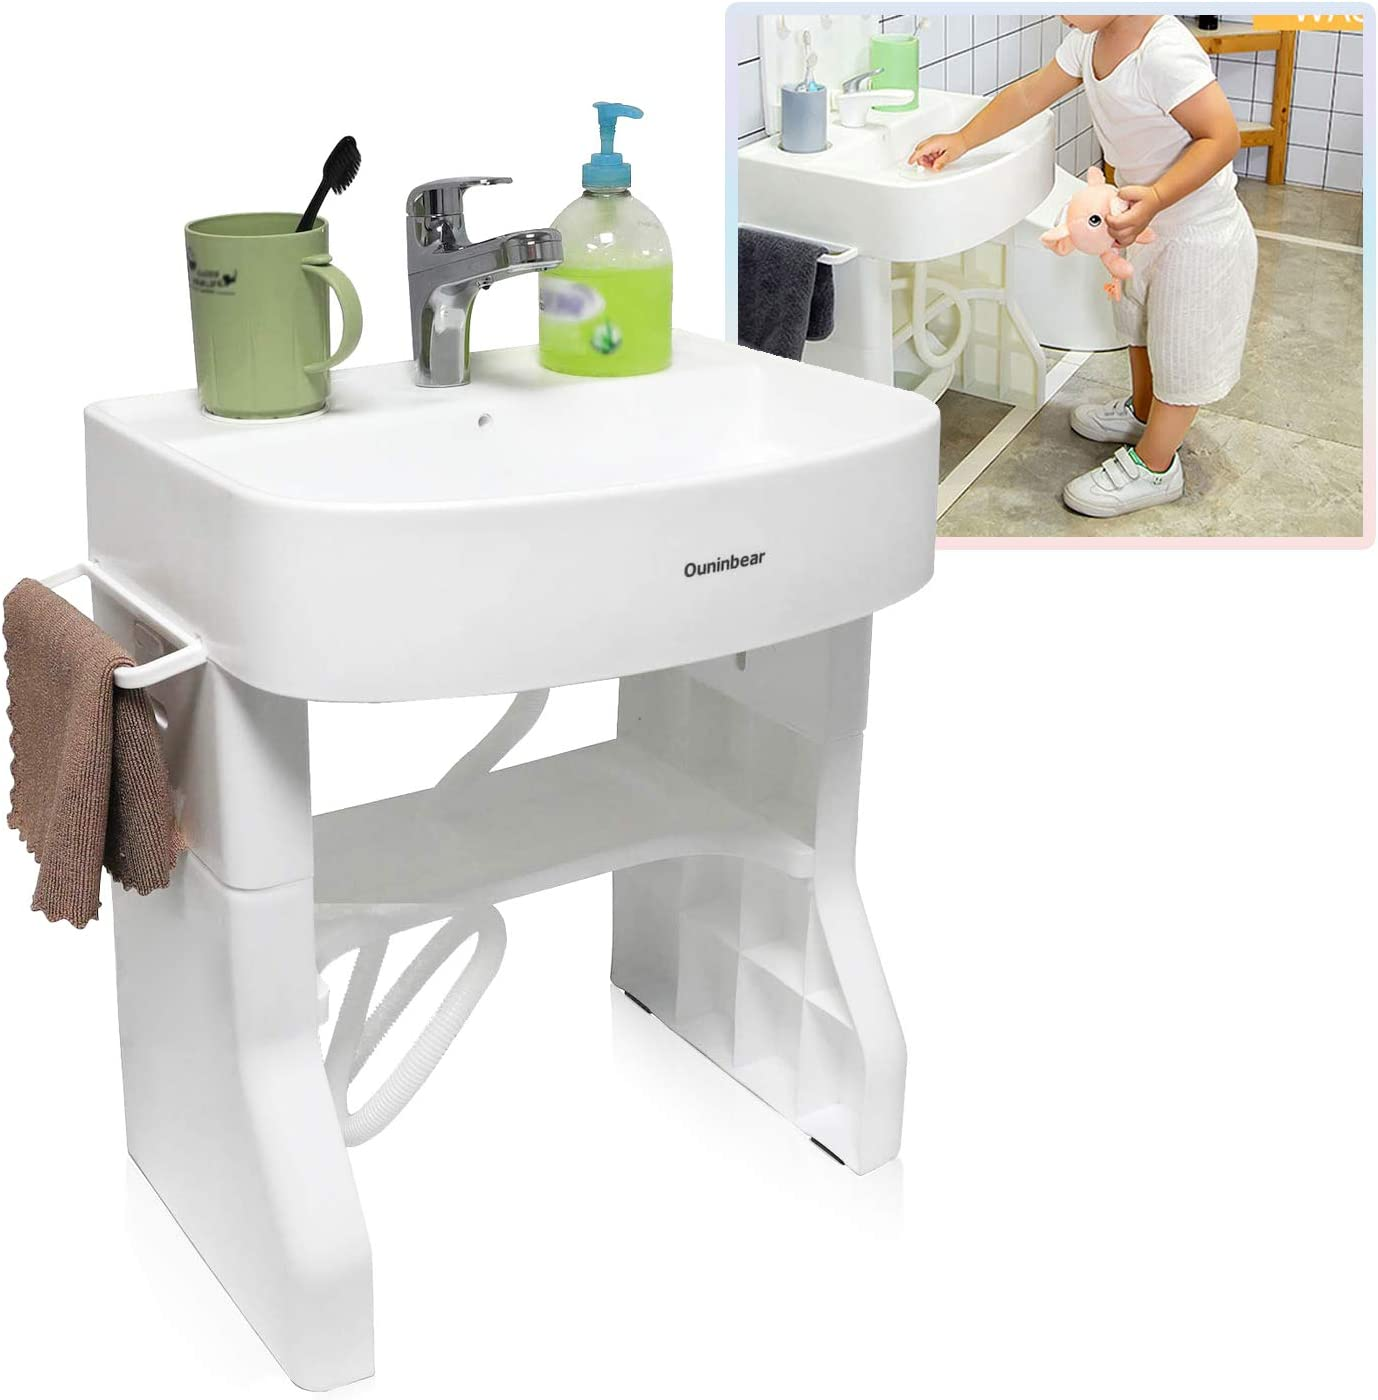 HTTMT- Washstand Mesa Mall Self-Care Station Portable Child For Basin Wash Special price